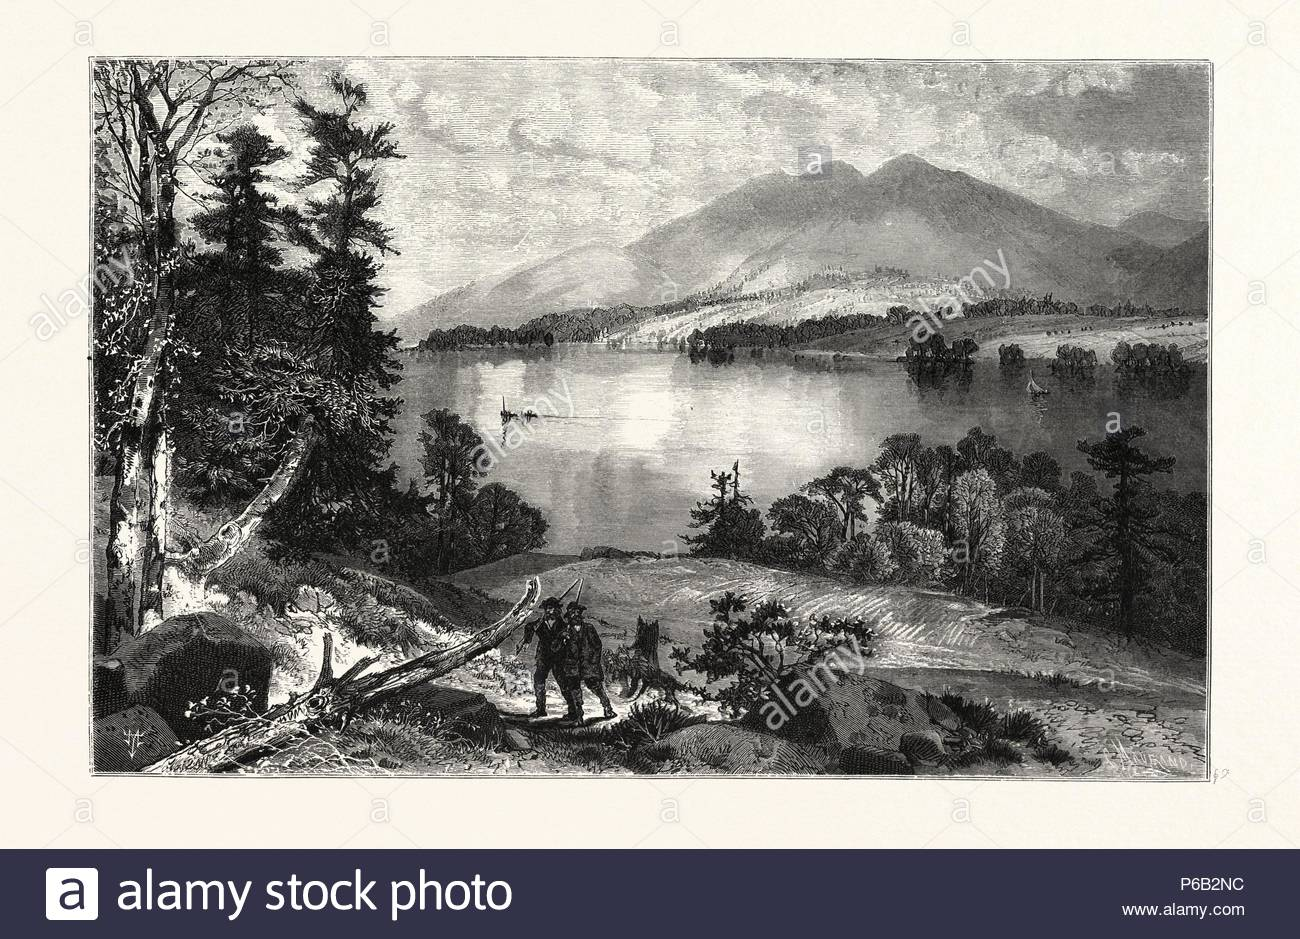 CAT MOUNTAIN, LAKE GEORGE. THOMAS MORAN, England was an American painter and printmaker of the Hudson River School in New York whose work often featured the Rocky Mountains. USA. - Stock Image